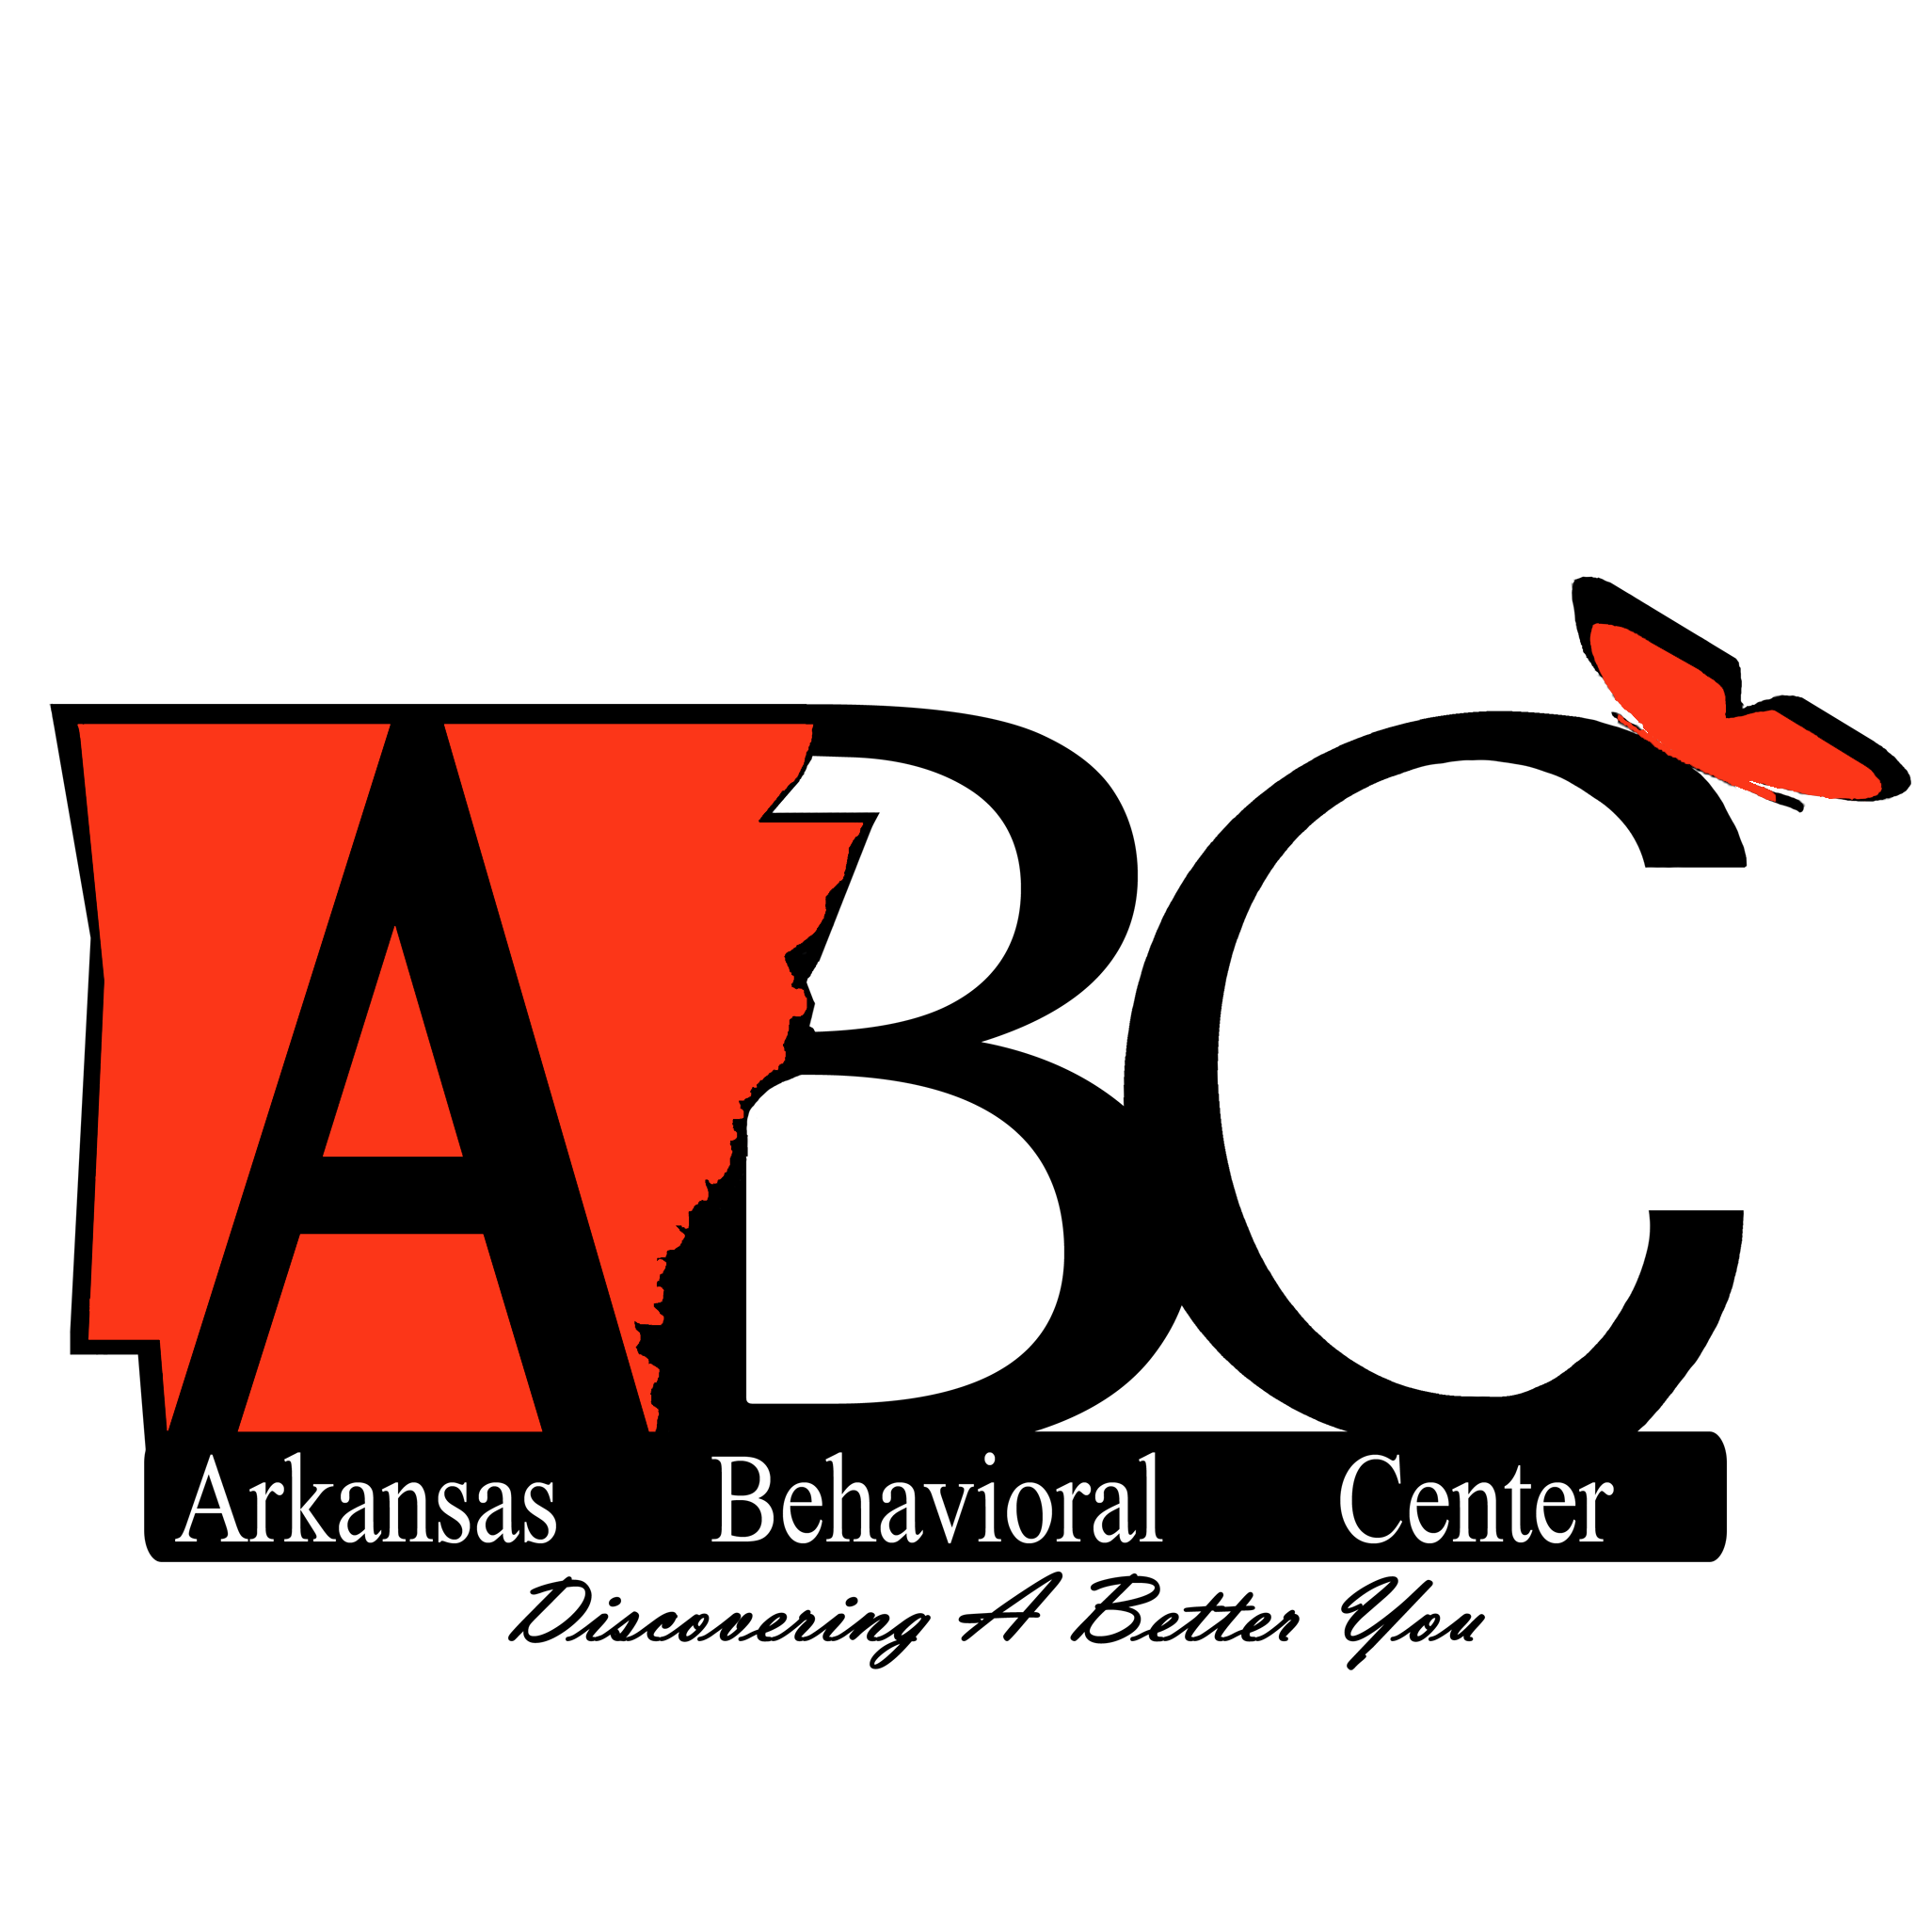 Arkansas Behavioral Center (ABC)